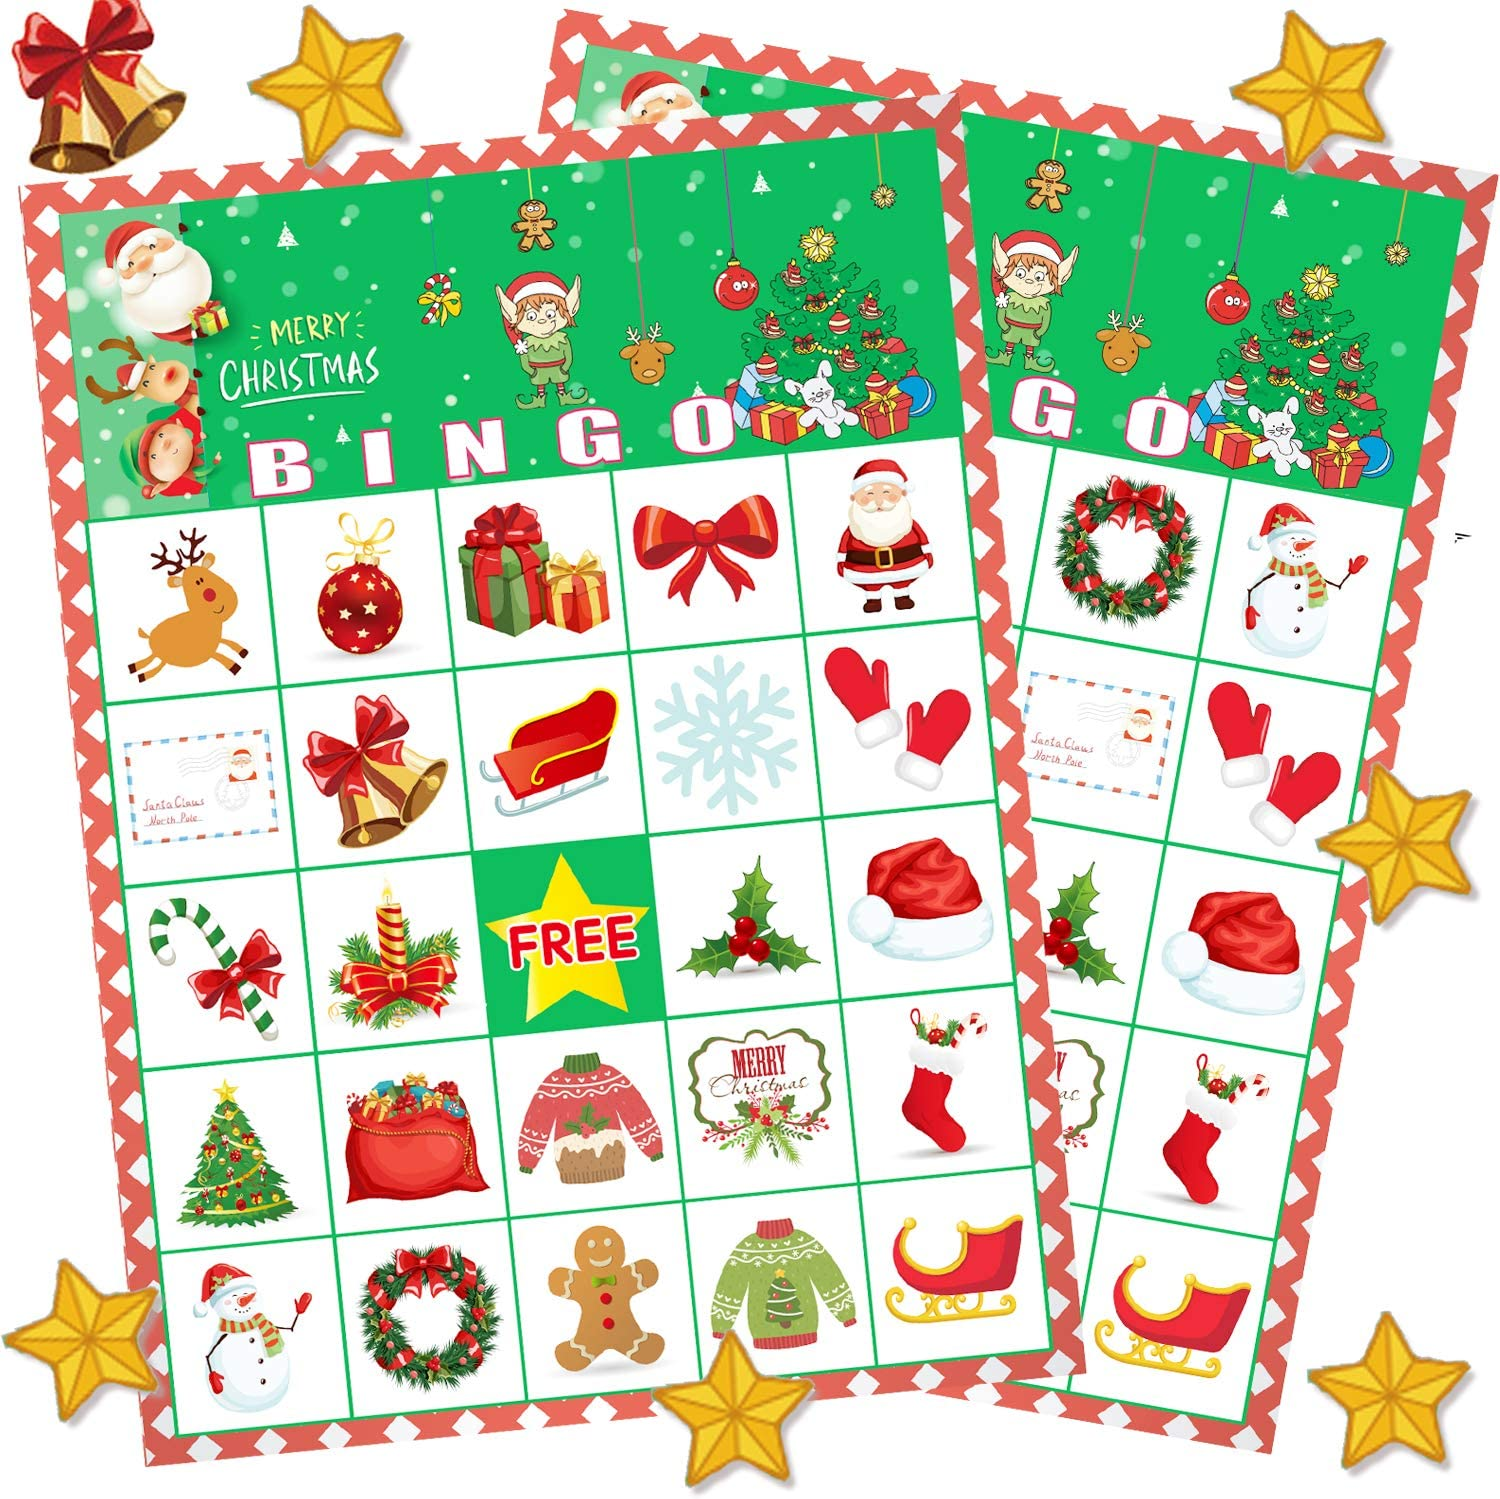 Amazon Com Funnlot Christmas Bingo Game For Large Group Christmas Party Games For Kids 24 Players Christmas Activities Christmas Bingo Cards For School Classroom Family Activities Christmas Party Supplies Toys Games